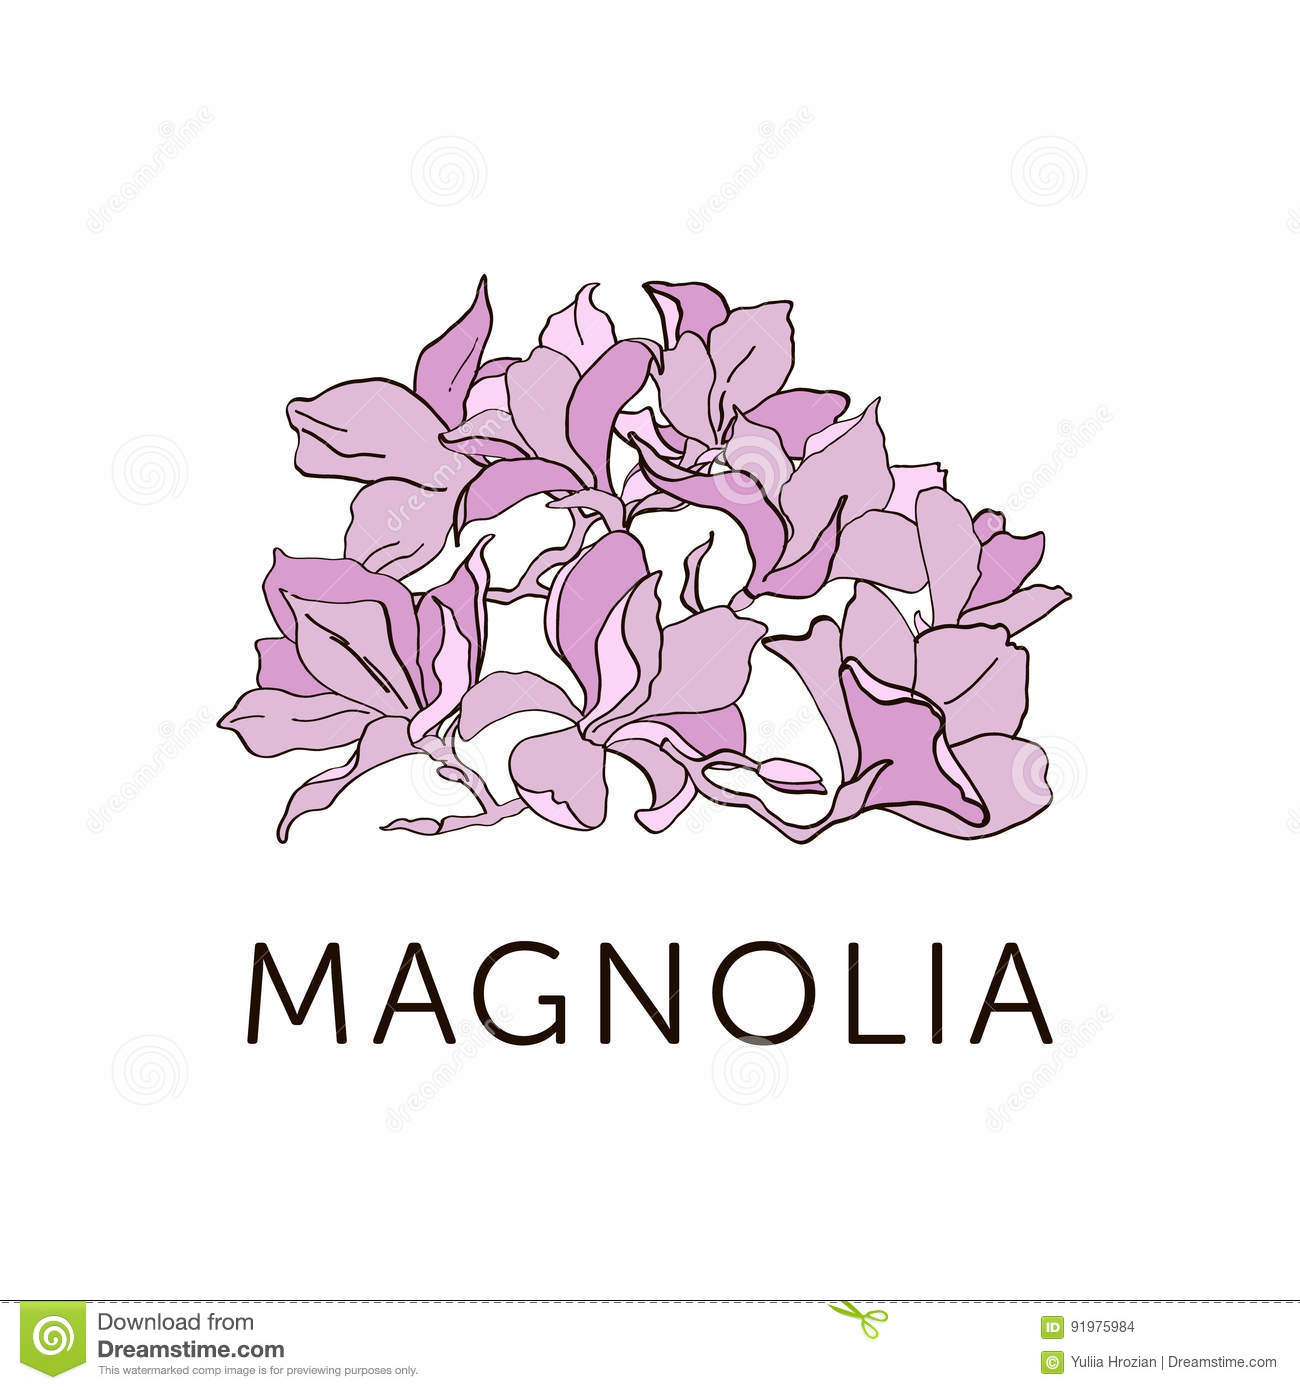 Magnolia Flower Outline Sketch Colored In Pink Each Flower Is A